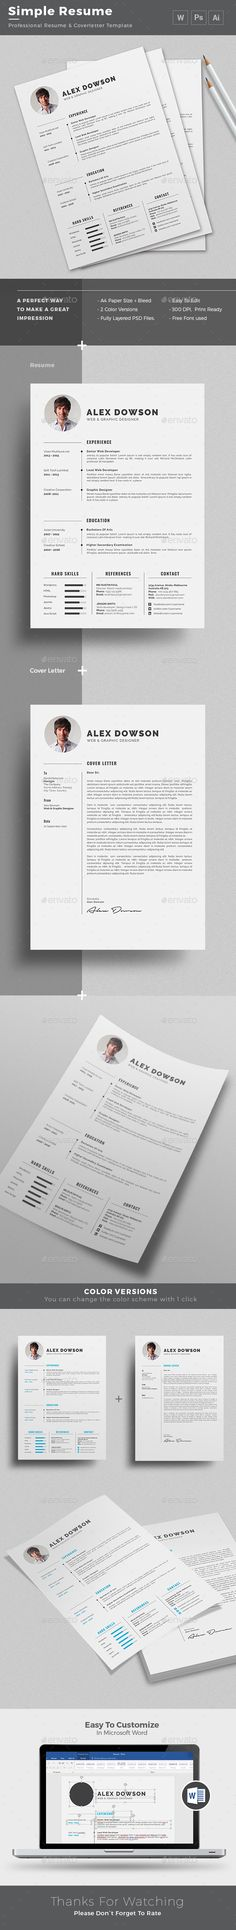 Resume Word Resume words, Cv template and Modern resume - simple resume template free download